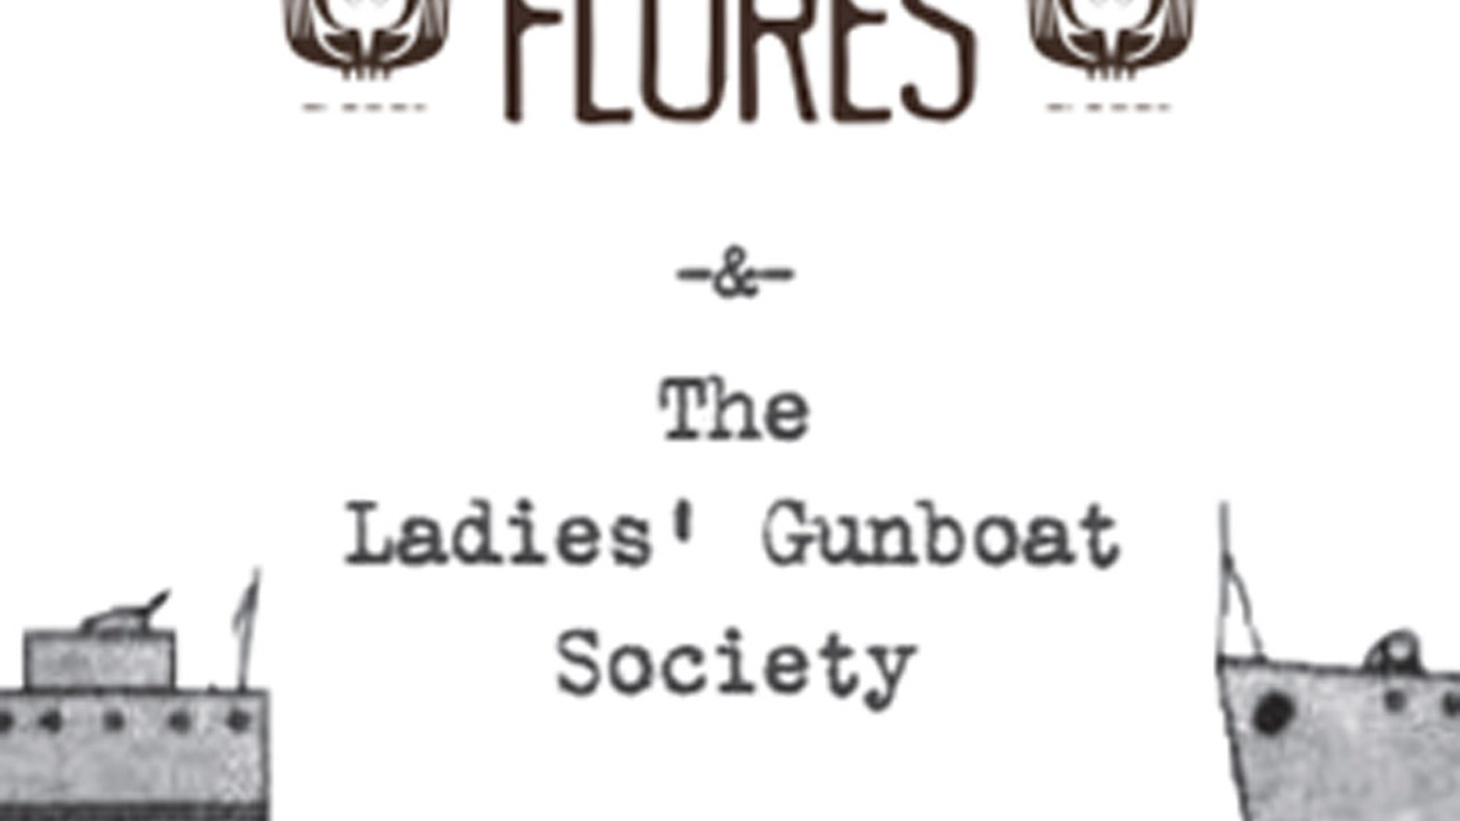 Jonathan Gold reviews Ladies' Gunboat Society at Flores on Sawtelle.